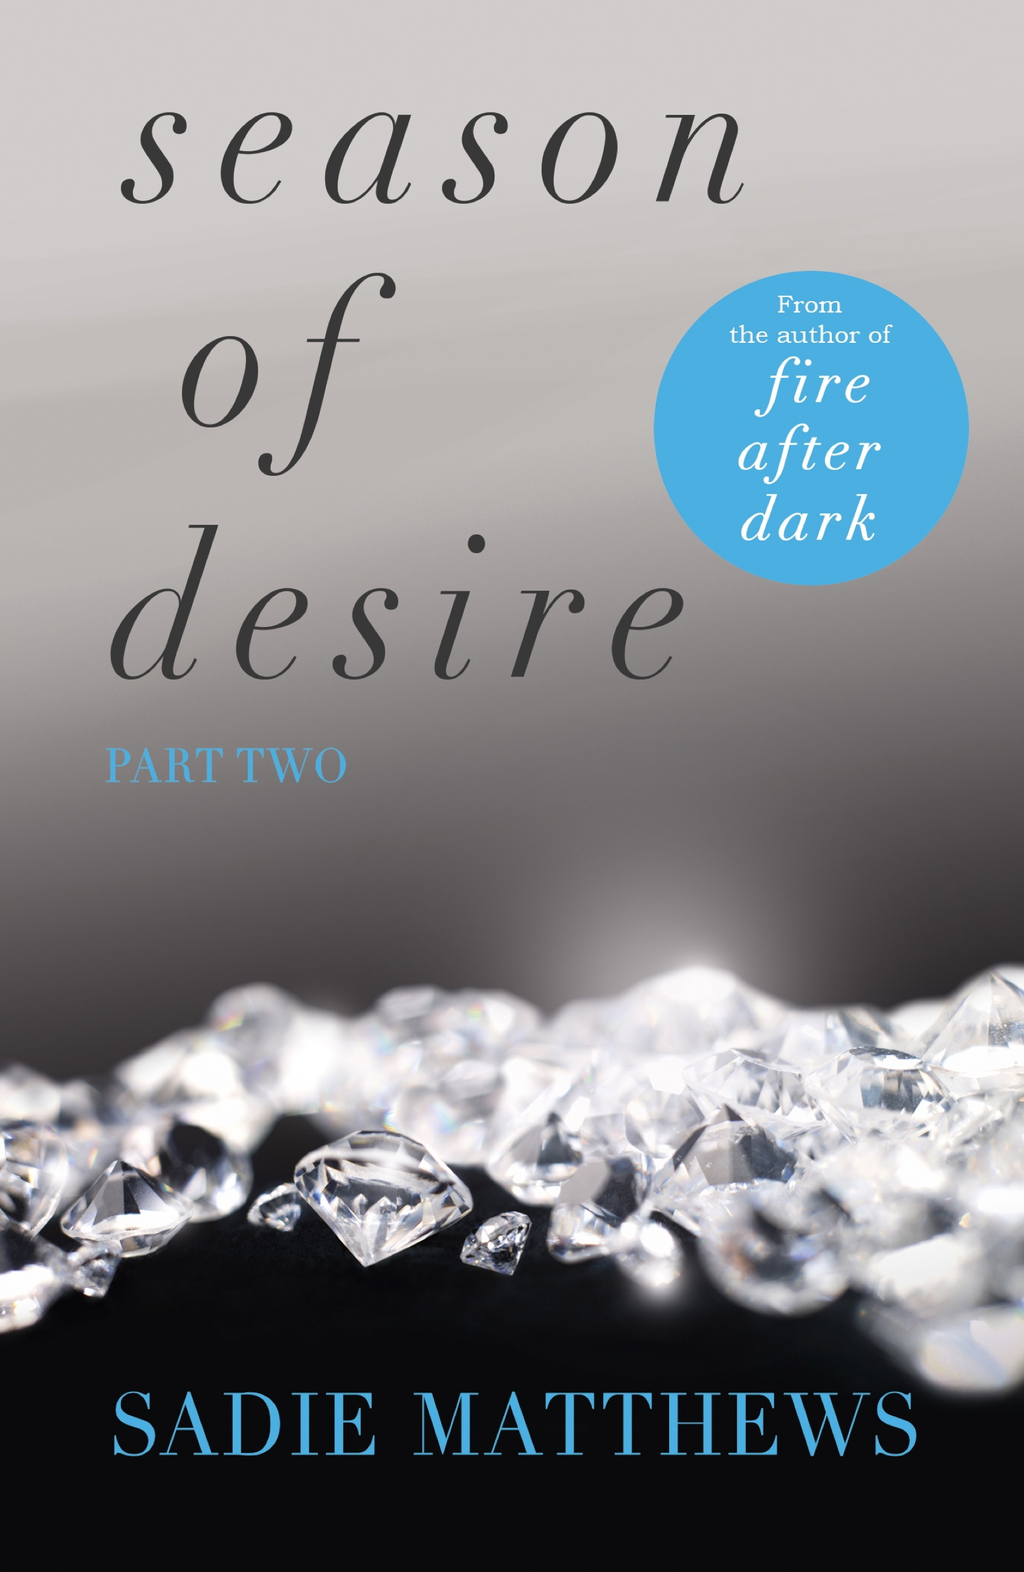 A Lesson of Intensity Season of Desire Part 2